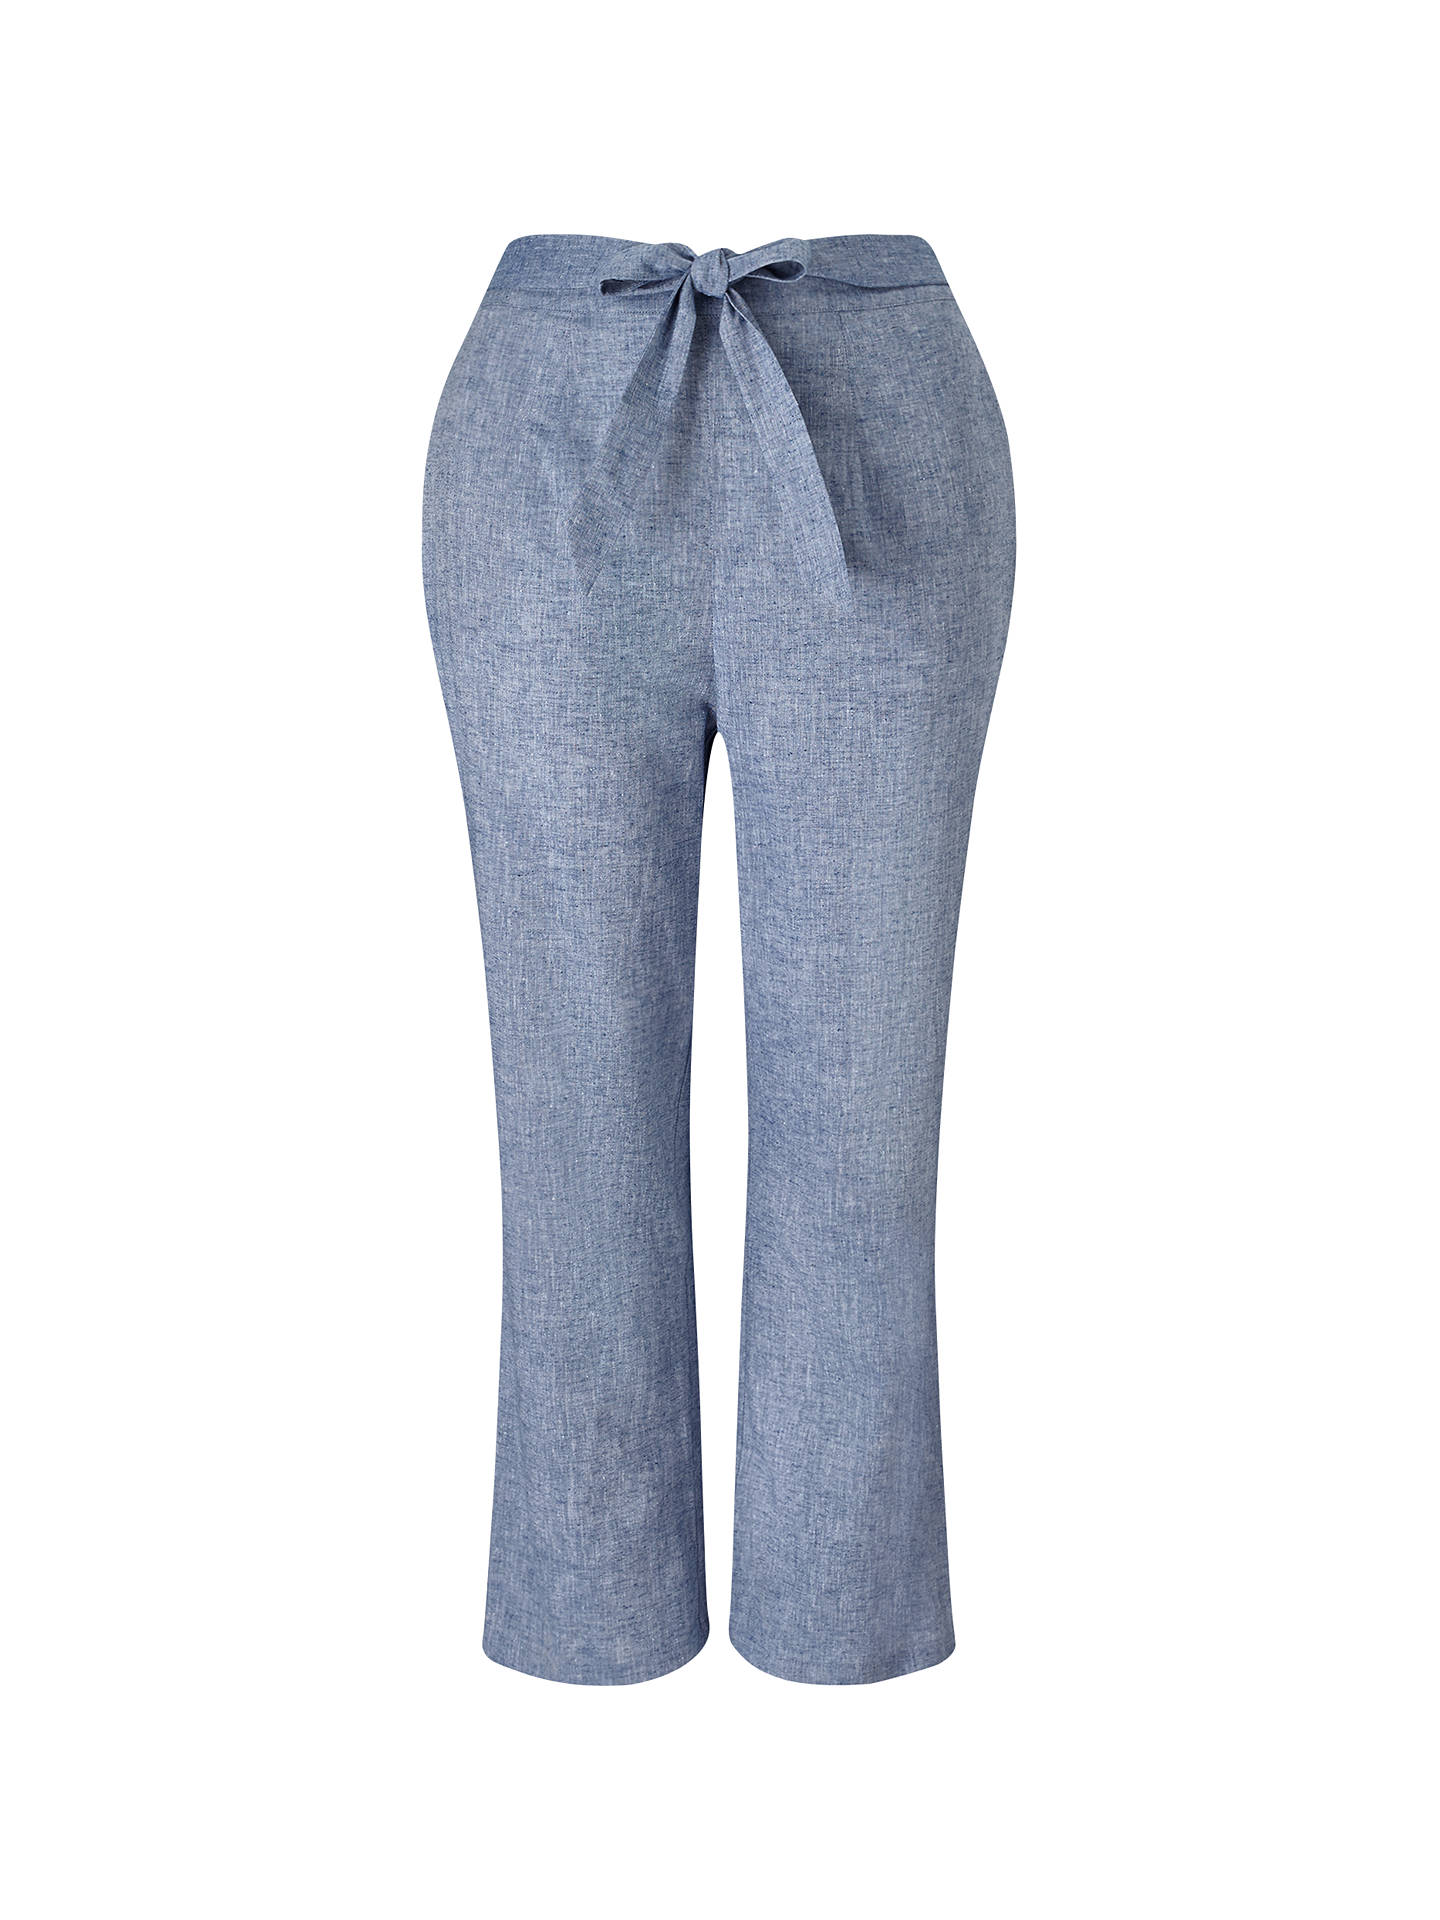 BuyStudio 8 Reeta Trousers, Blue, 12 Online at johnlewis.com